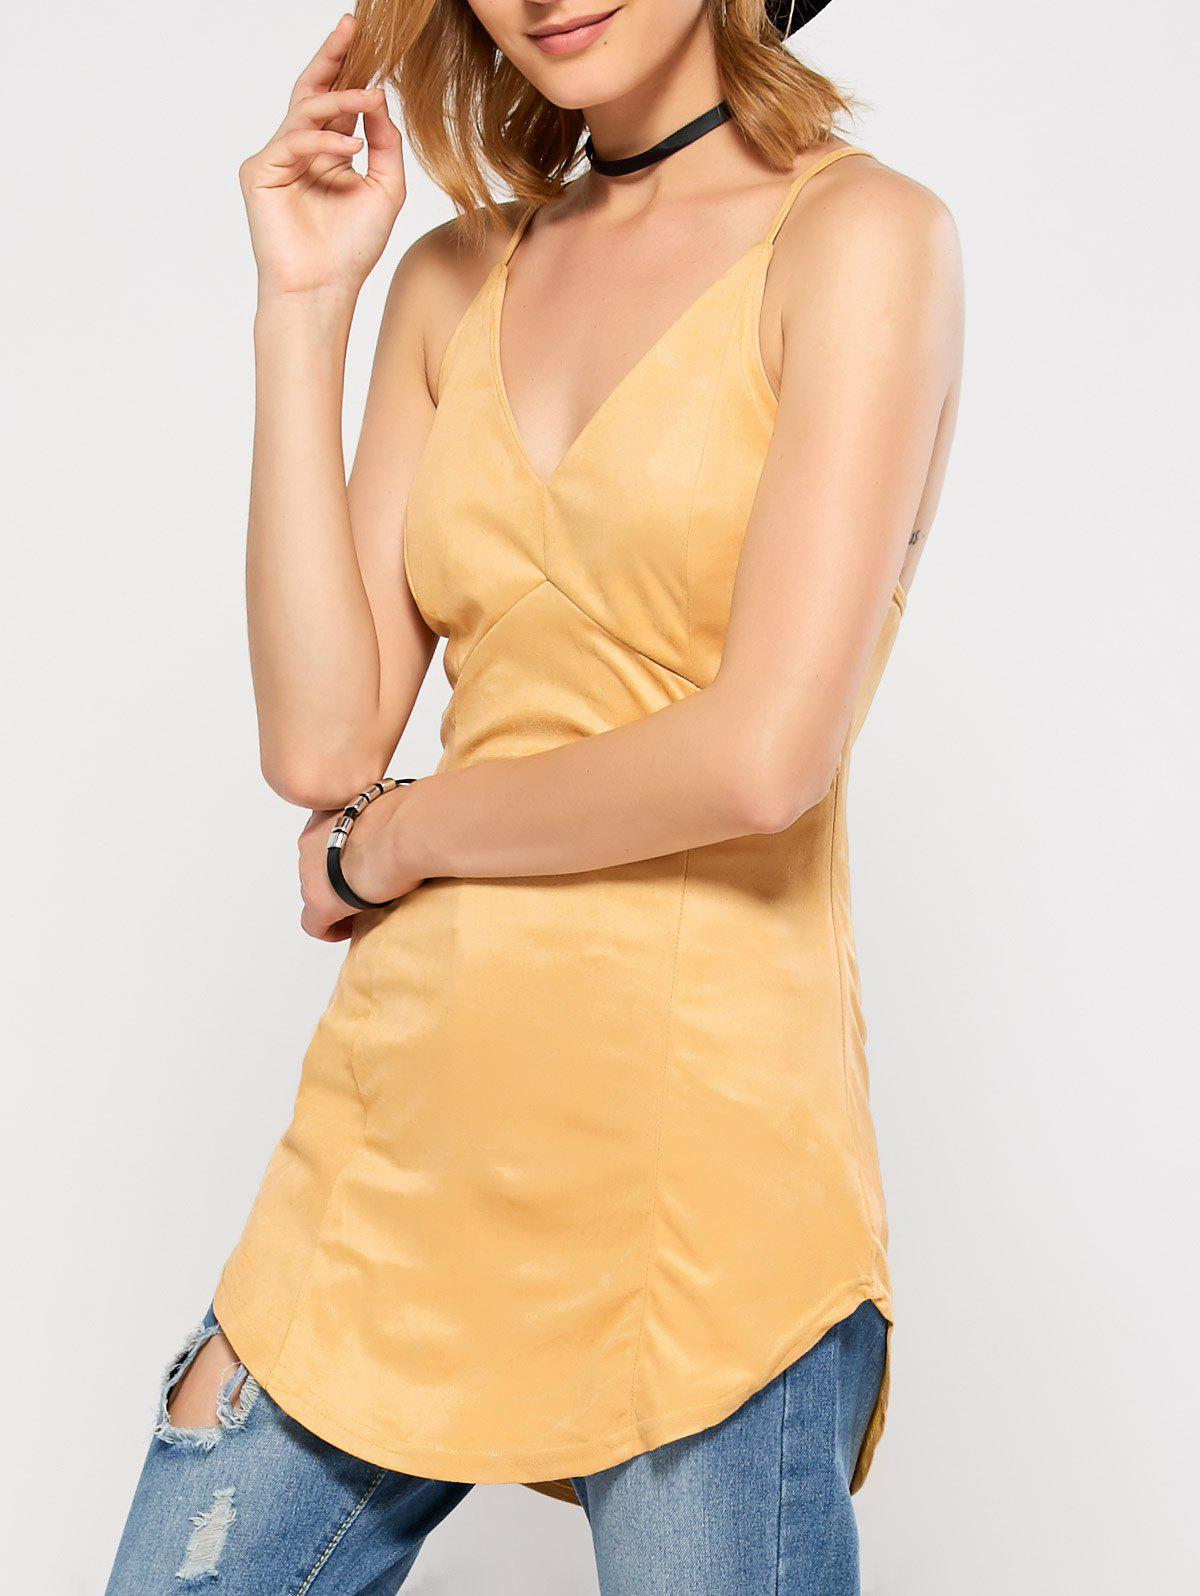 Criss Back Suede Cami Top - YELLOW M